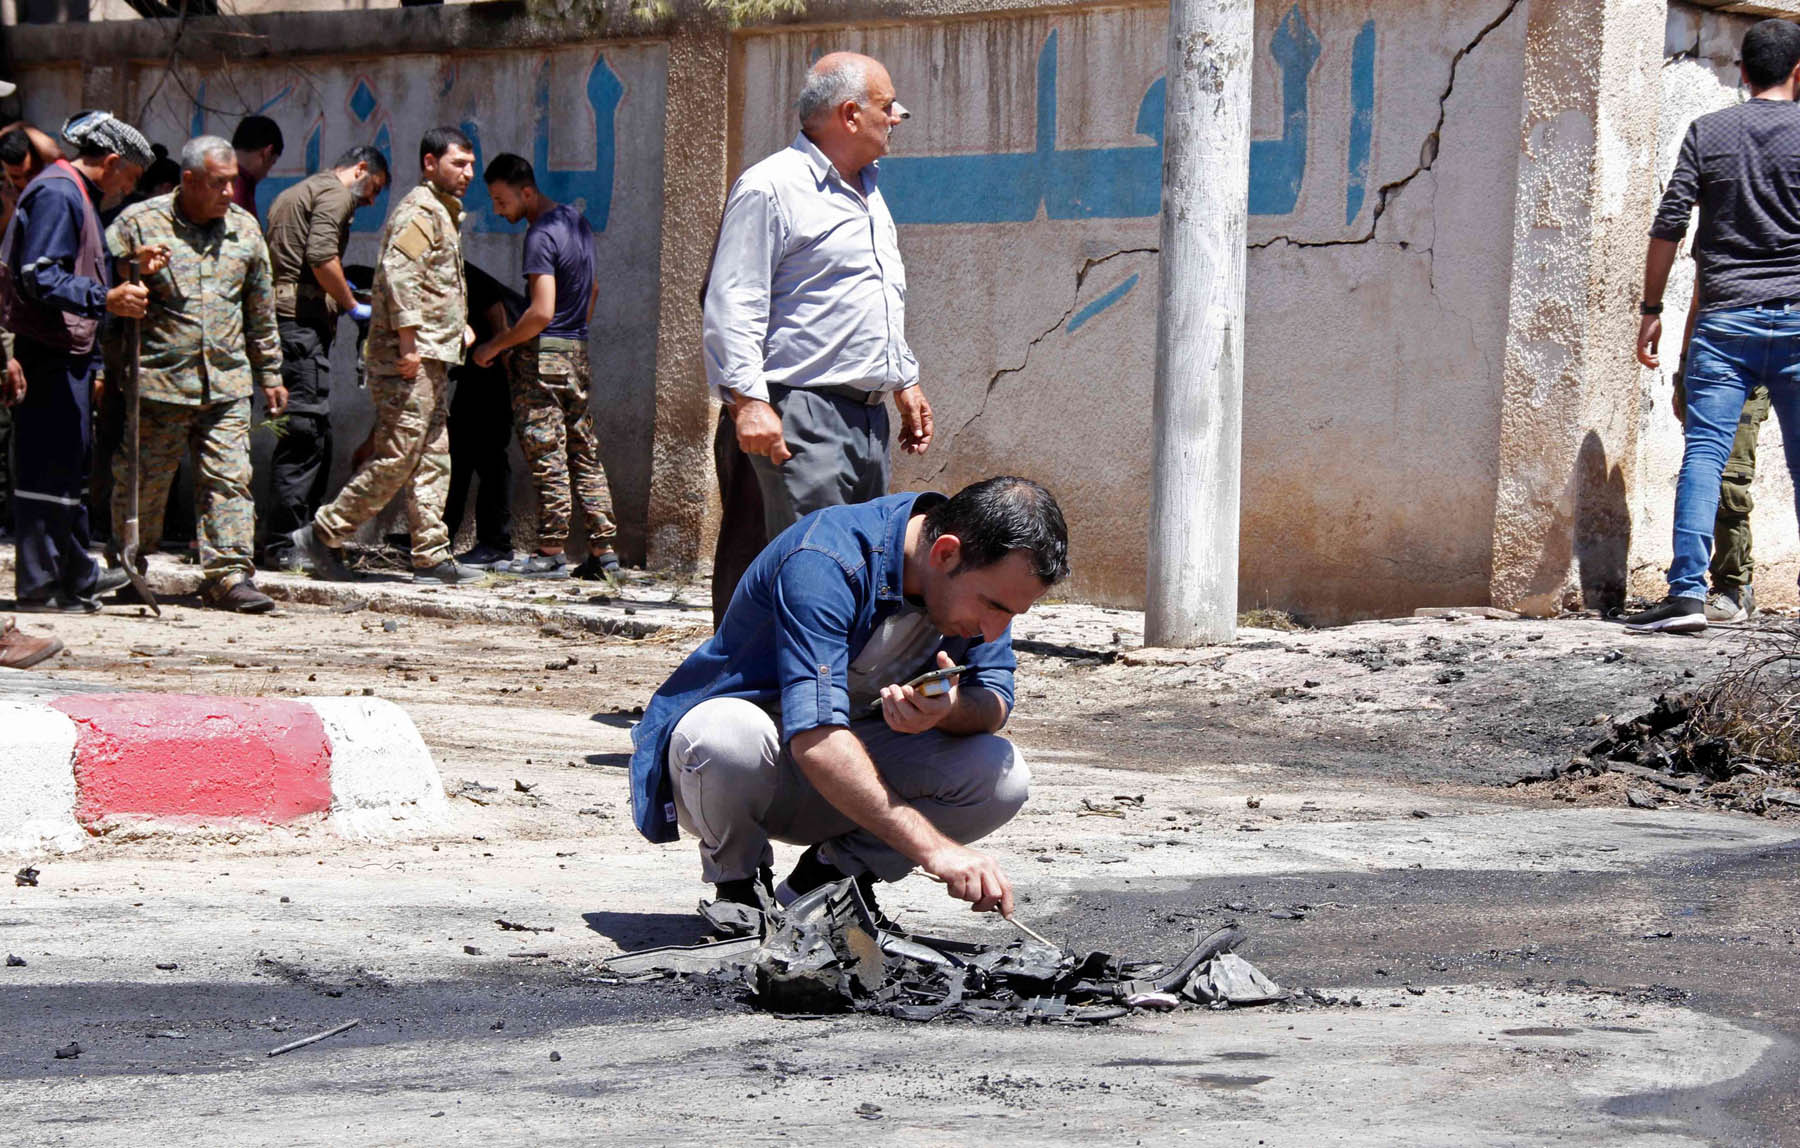 A member of the Kurdish security forces examines debris at the site of an ISIS-claimed car bombing in the town of al-Qahtaniyah in the Hasakah province, August 7. (AFP)